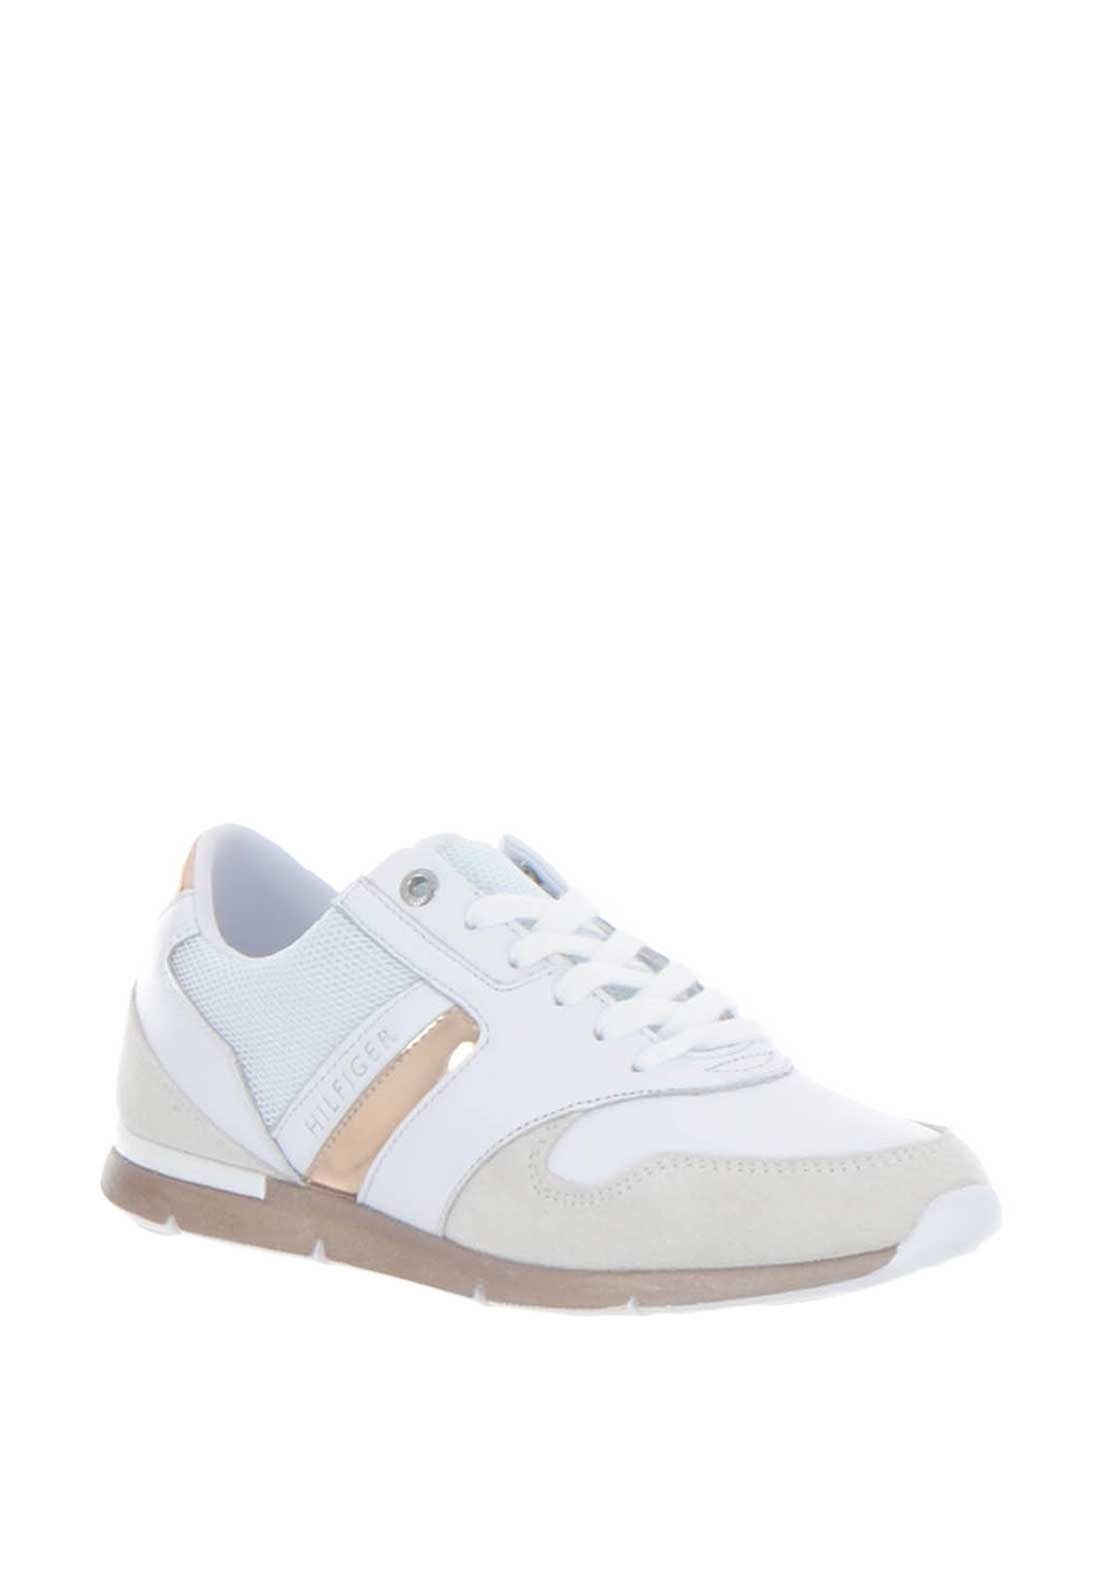 66388bf21 Tommy Hilfiger Womens Iridescent Light Trainers, Rose Gold | McElhinneys